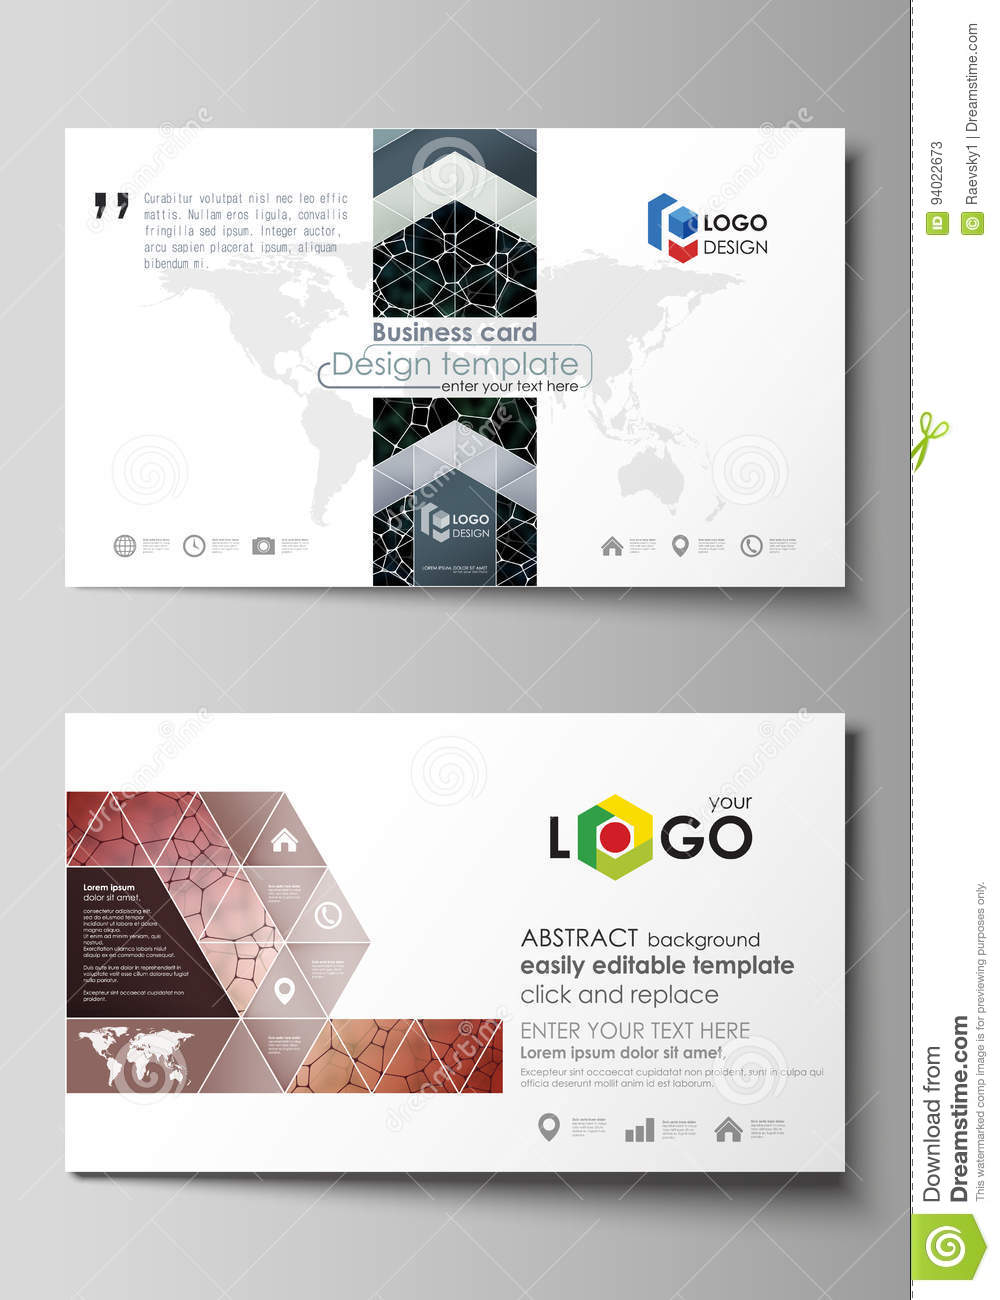 Business card templates easy editable layout abstract vector download business card templates easy editable layout abstract vector design template chemistry pattern accmission Gallery